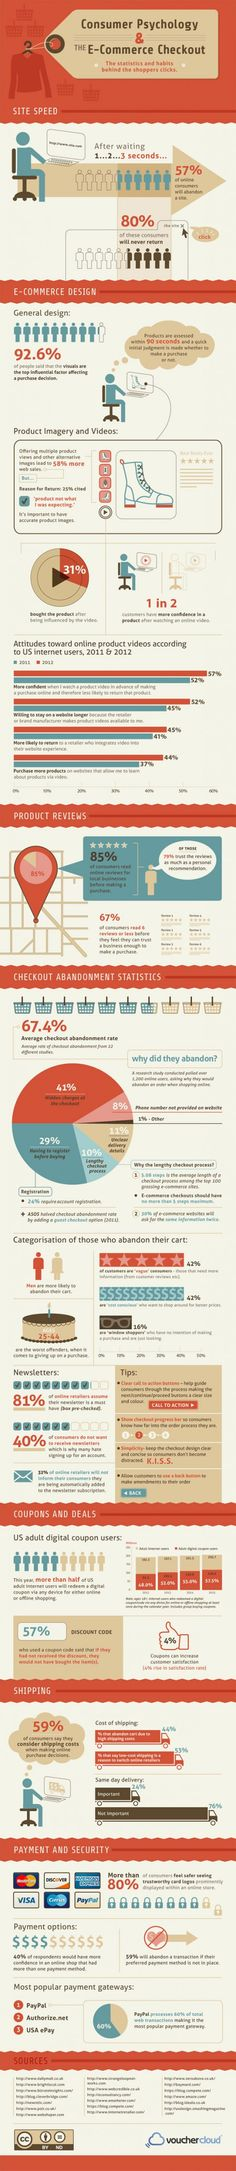 Consumer Psychology E-Commerce: The statistics and habits behind the shoppers clicks